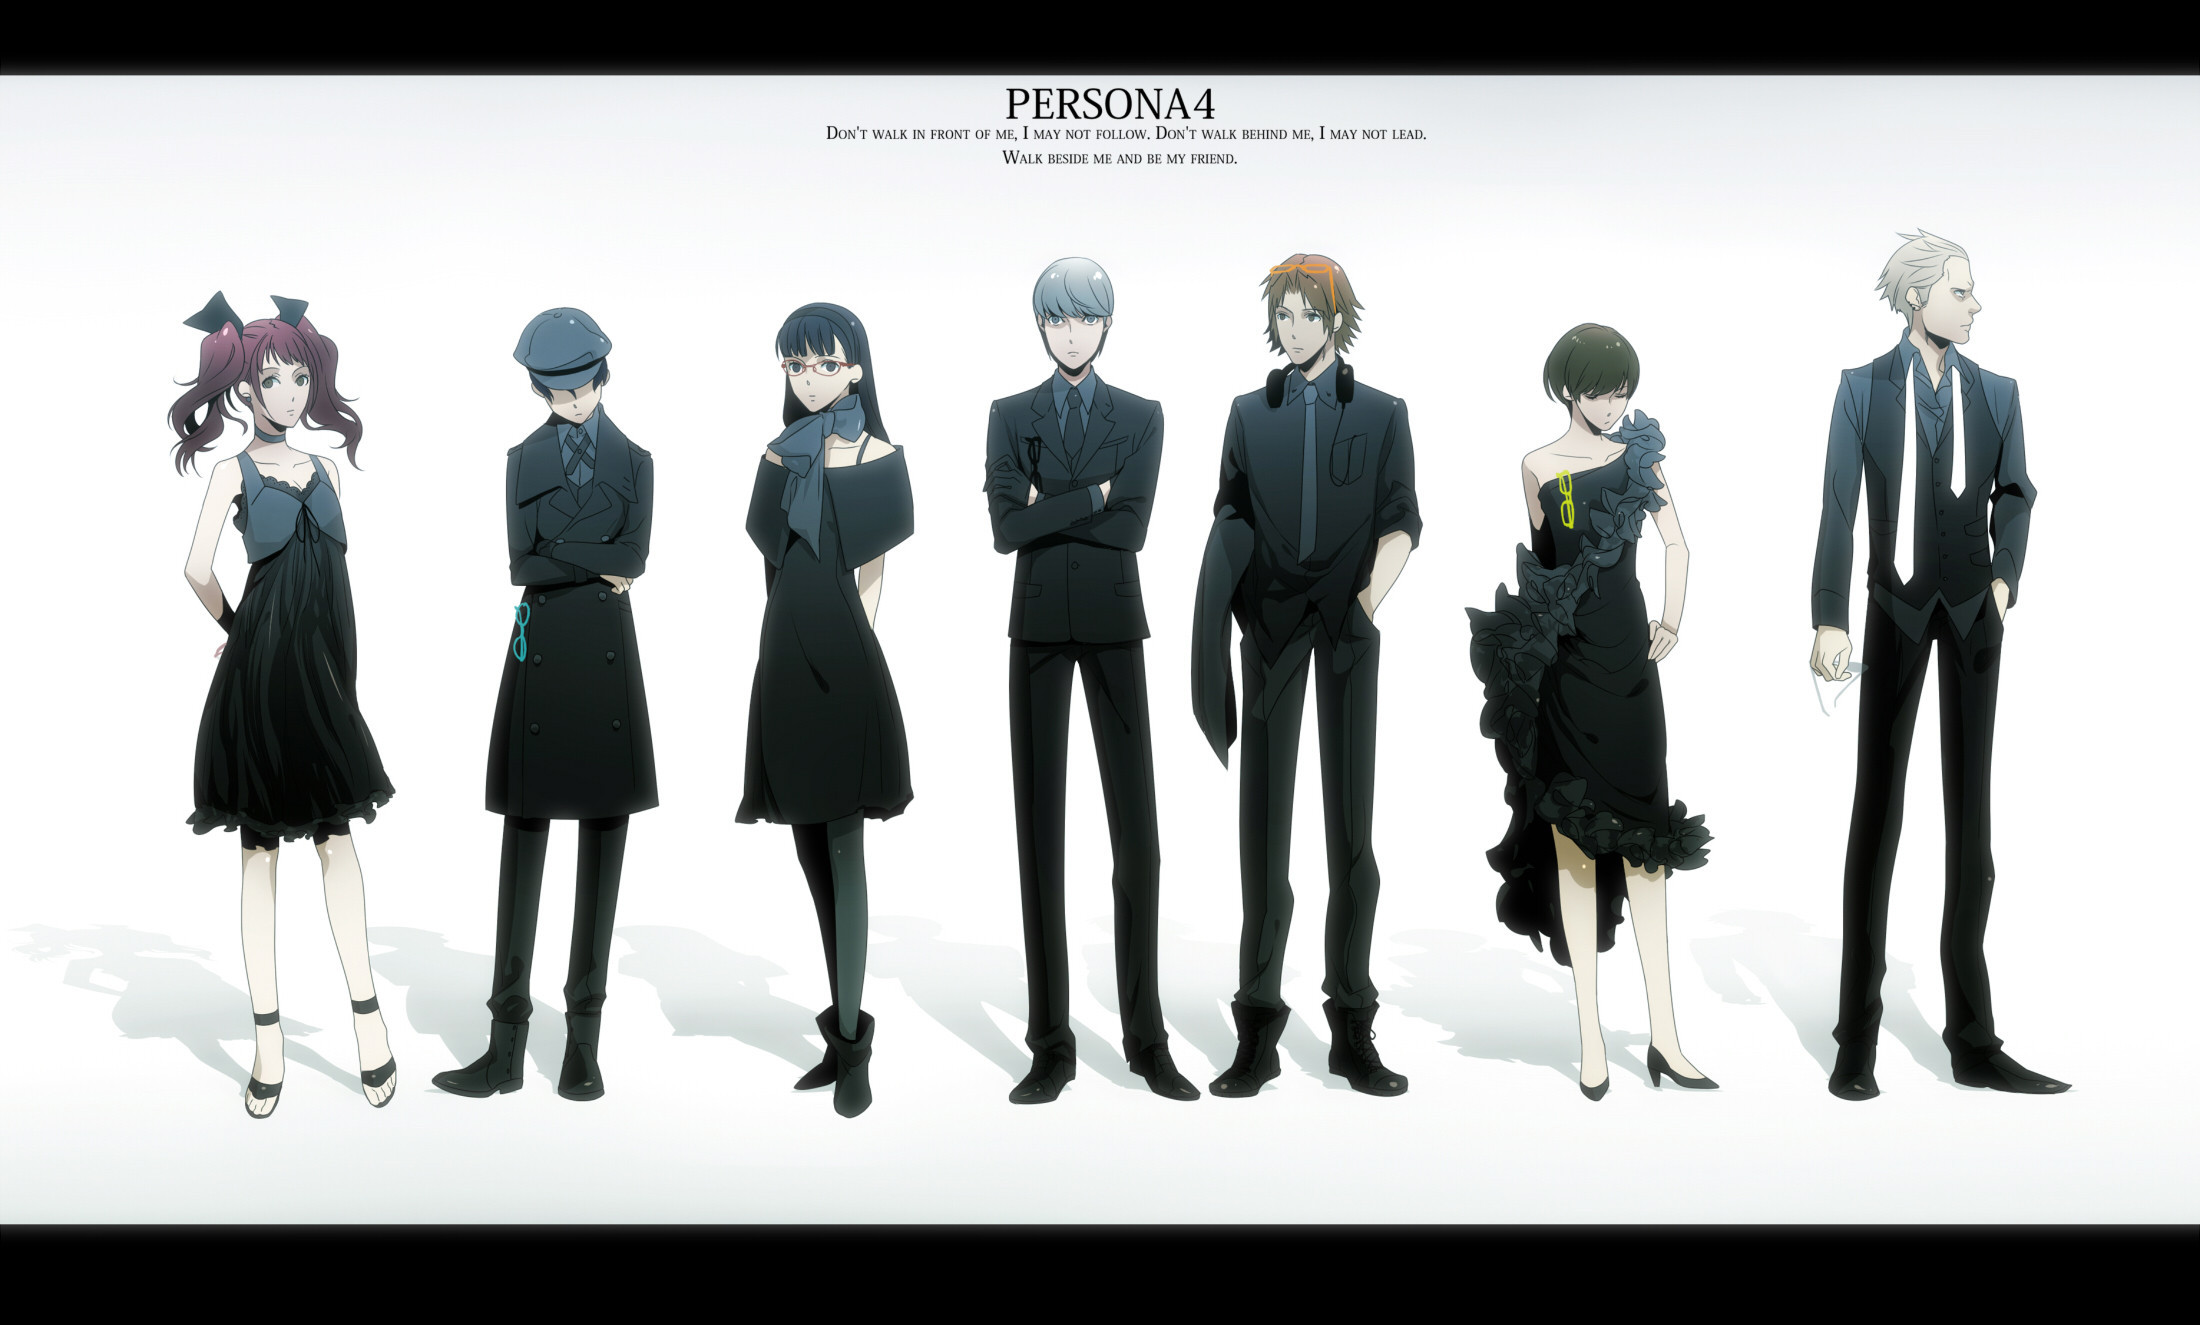 Persona HD Wallpapers and Backgrounds Persona Wallpapers Wallpapers)